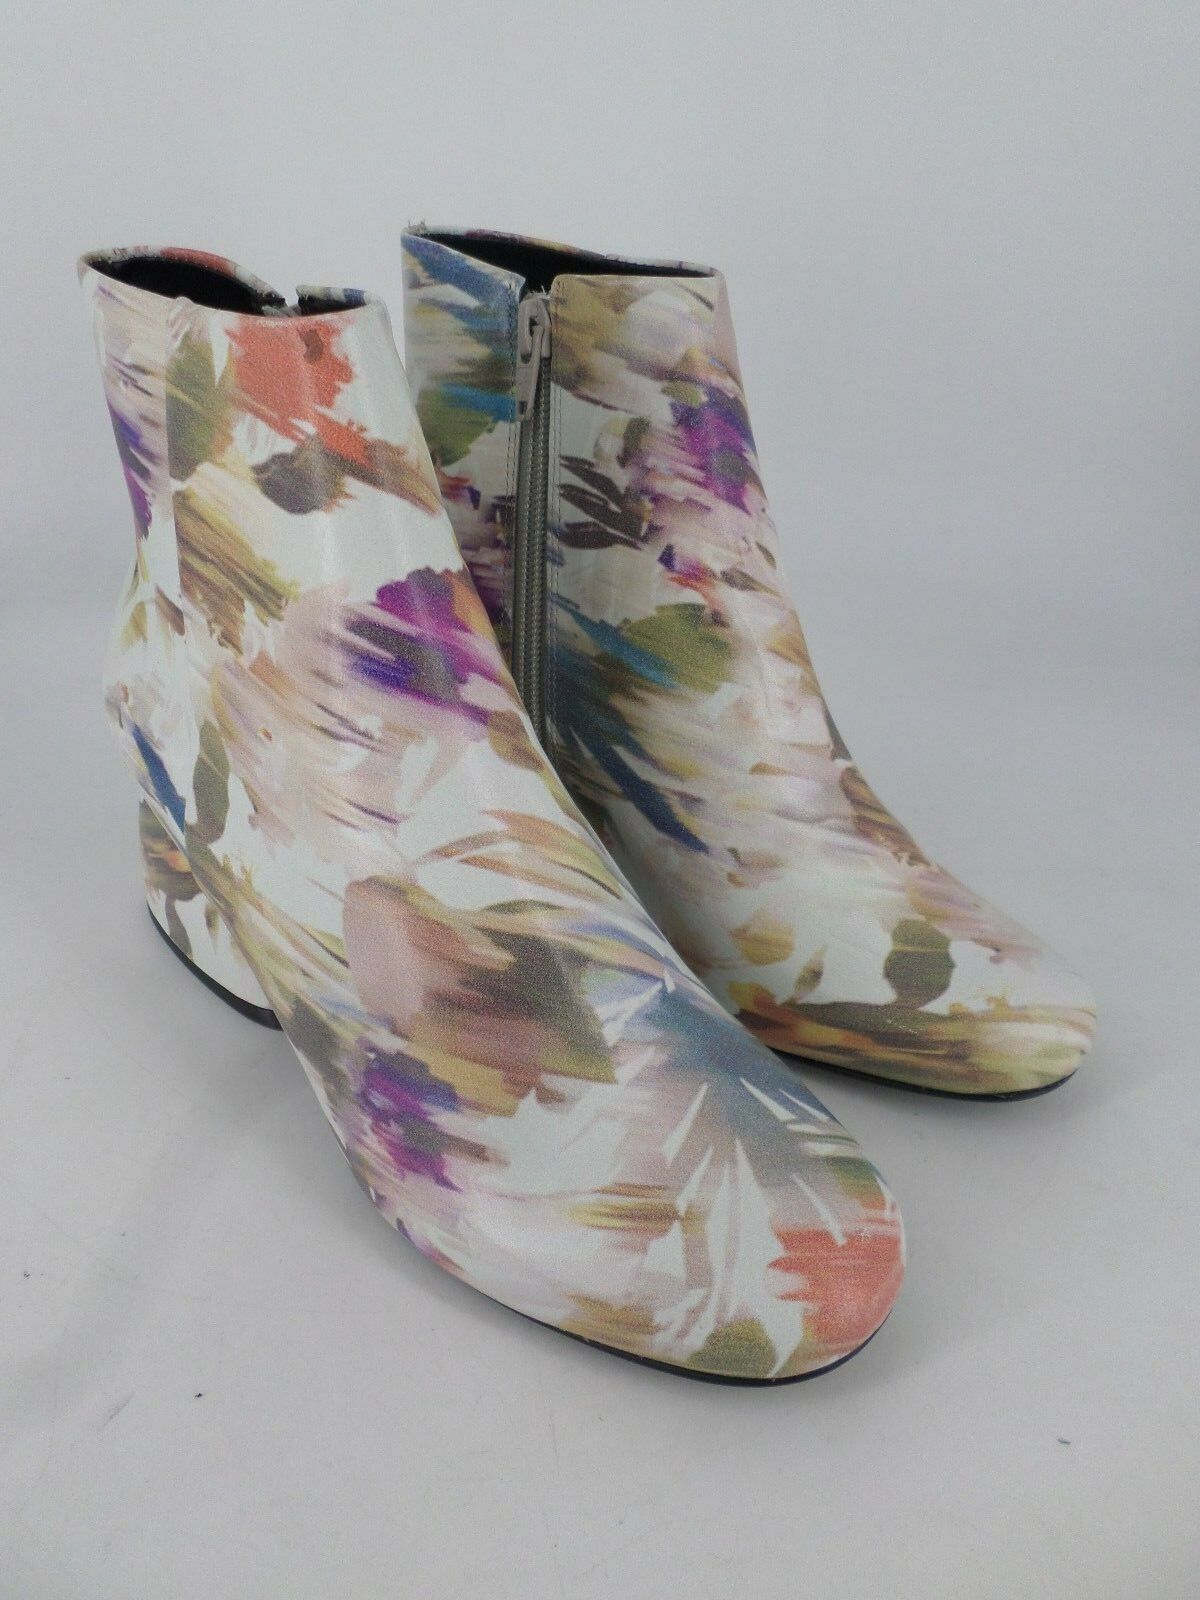 Topshop PORTUGAL EU Limited Edition Stiefel UK 4 EU PORTUGAL 37 LN35 64 070c9e